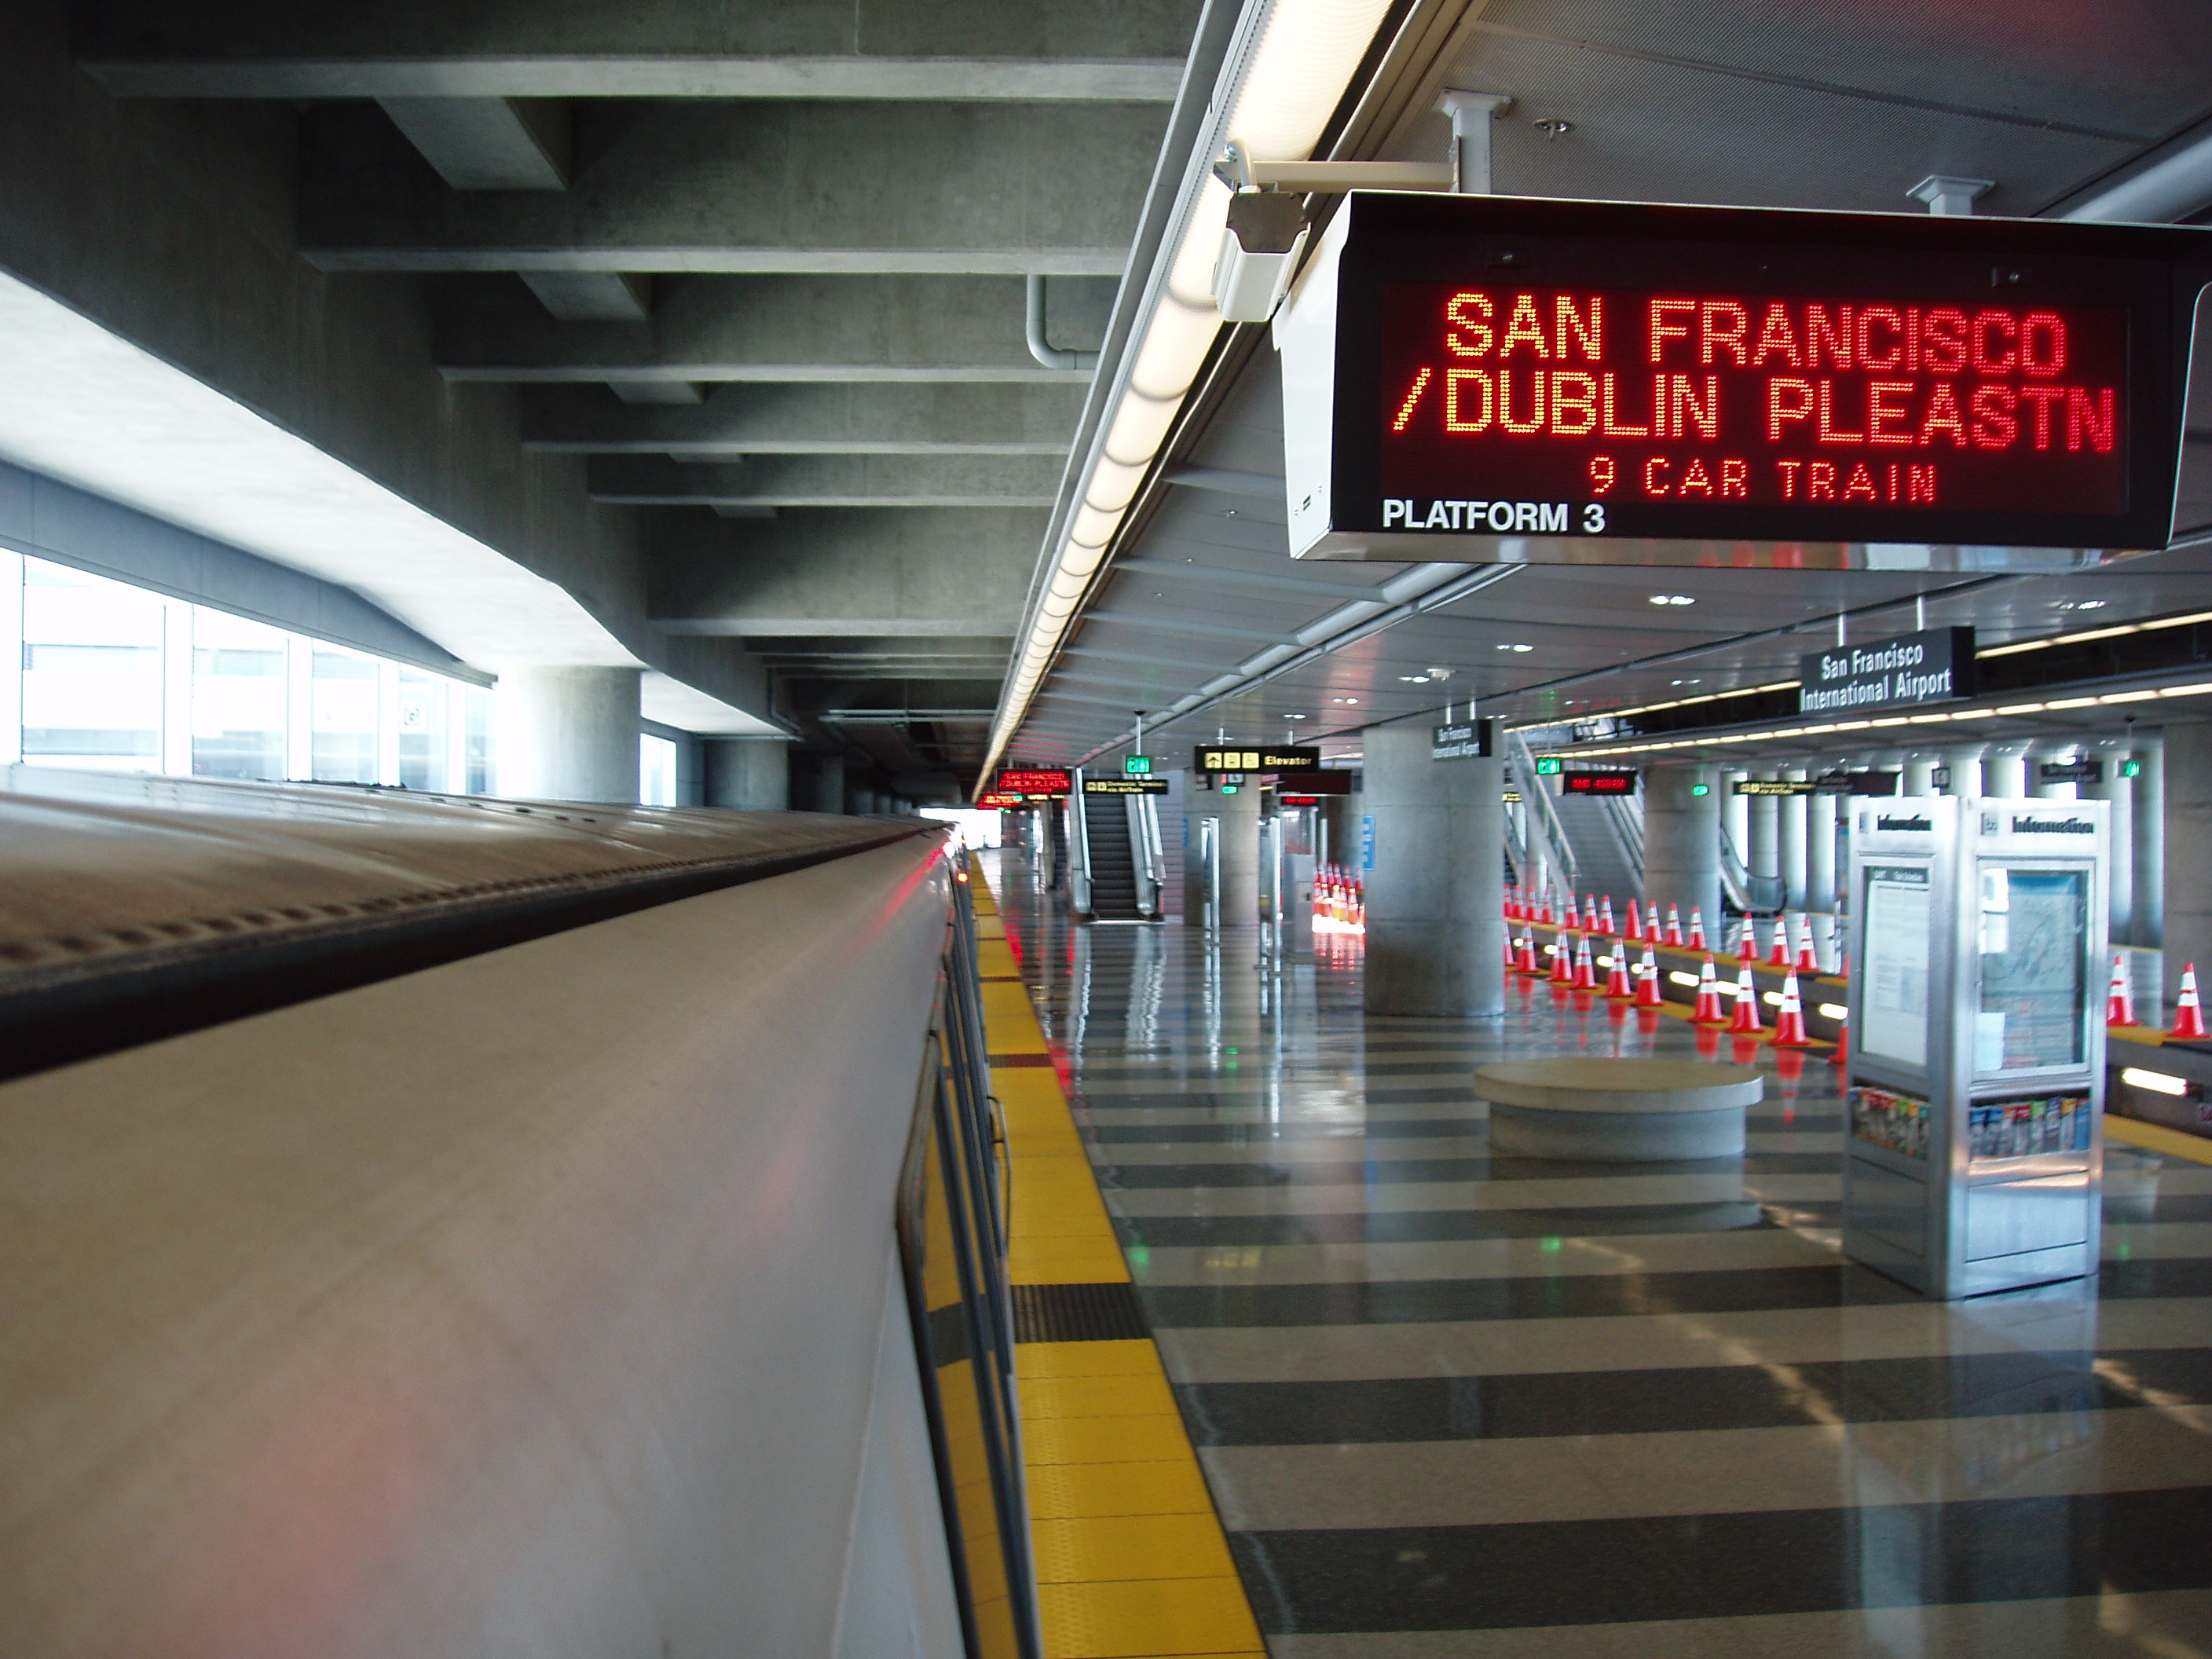 An empty train platform, with a red digital sign advertising trips to San Francisco and Dublin.